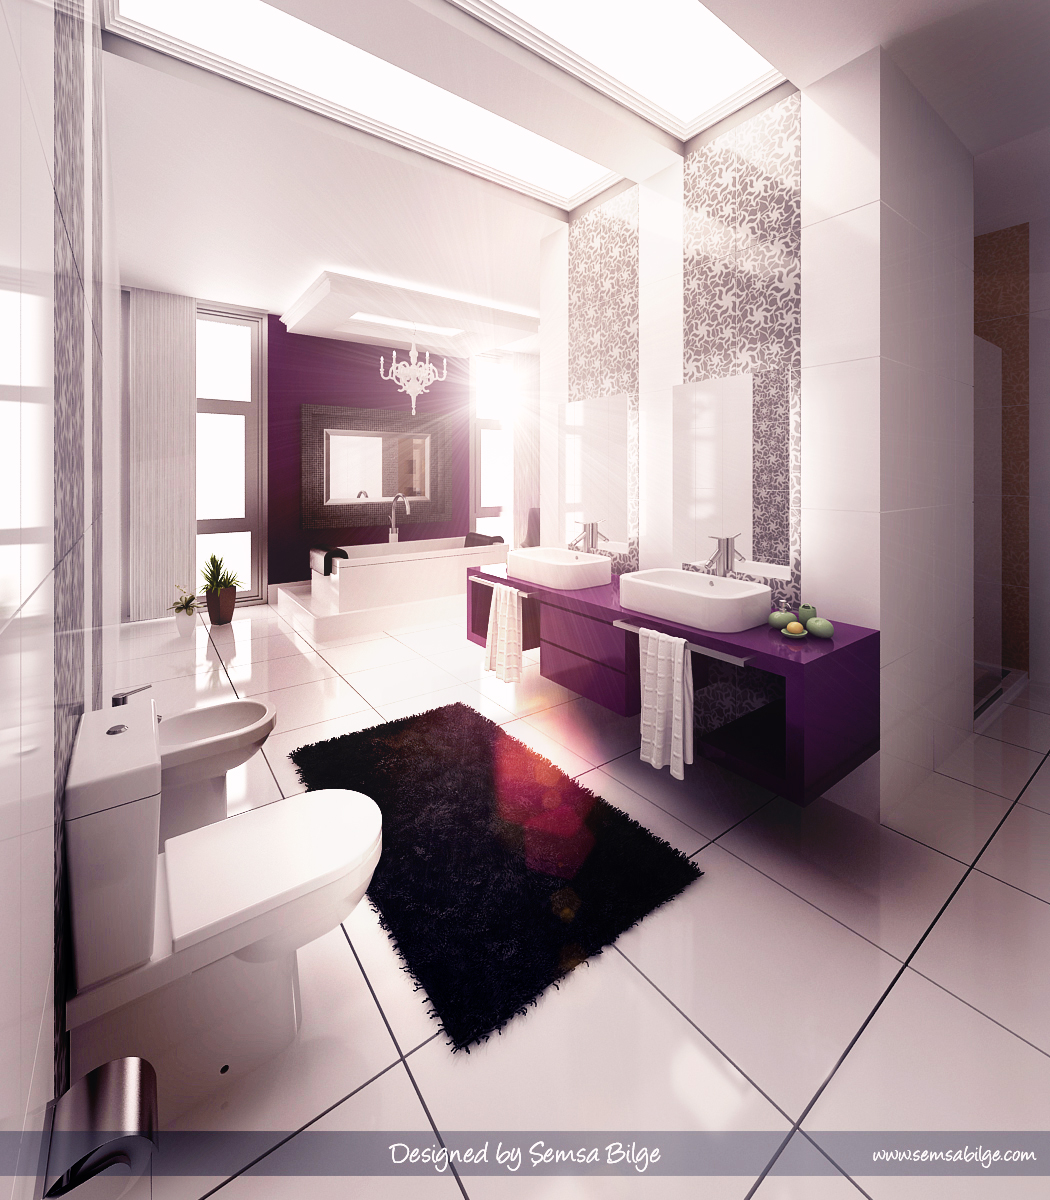 Inspiring bathroom designs for the soul for Bathroom design ideas